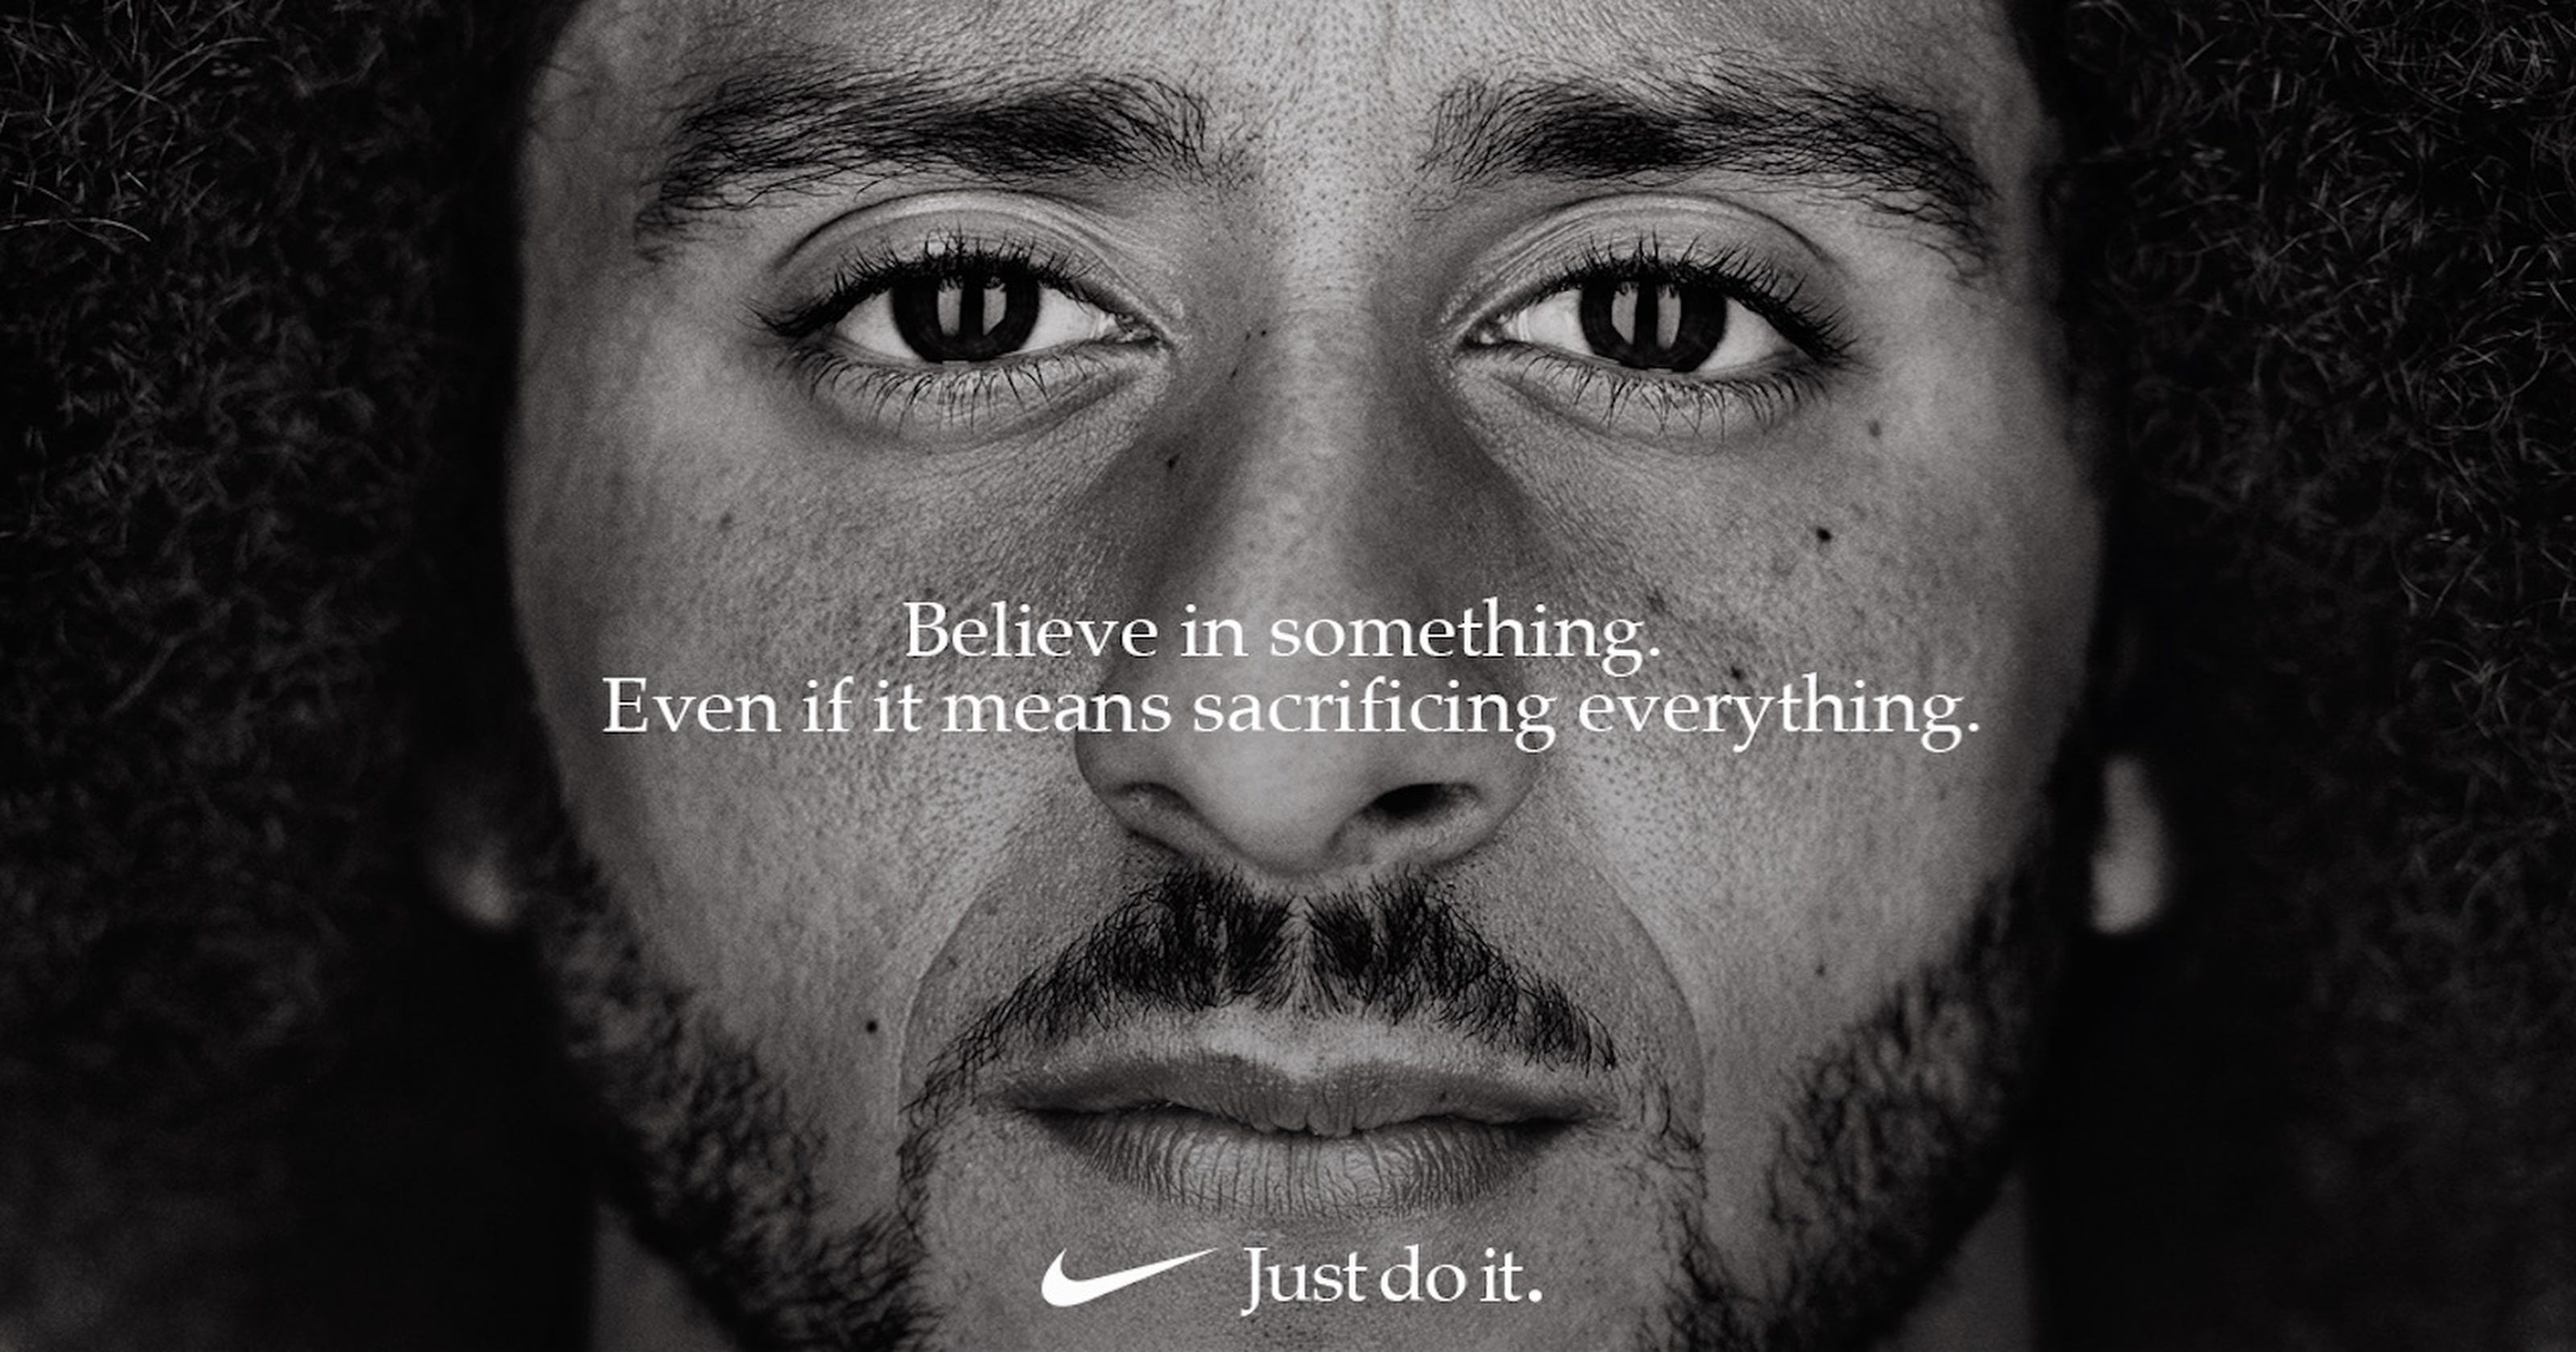 311bf72b2 Nike-Colin Kaepernick protest backfires  sports store forced to close